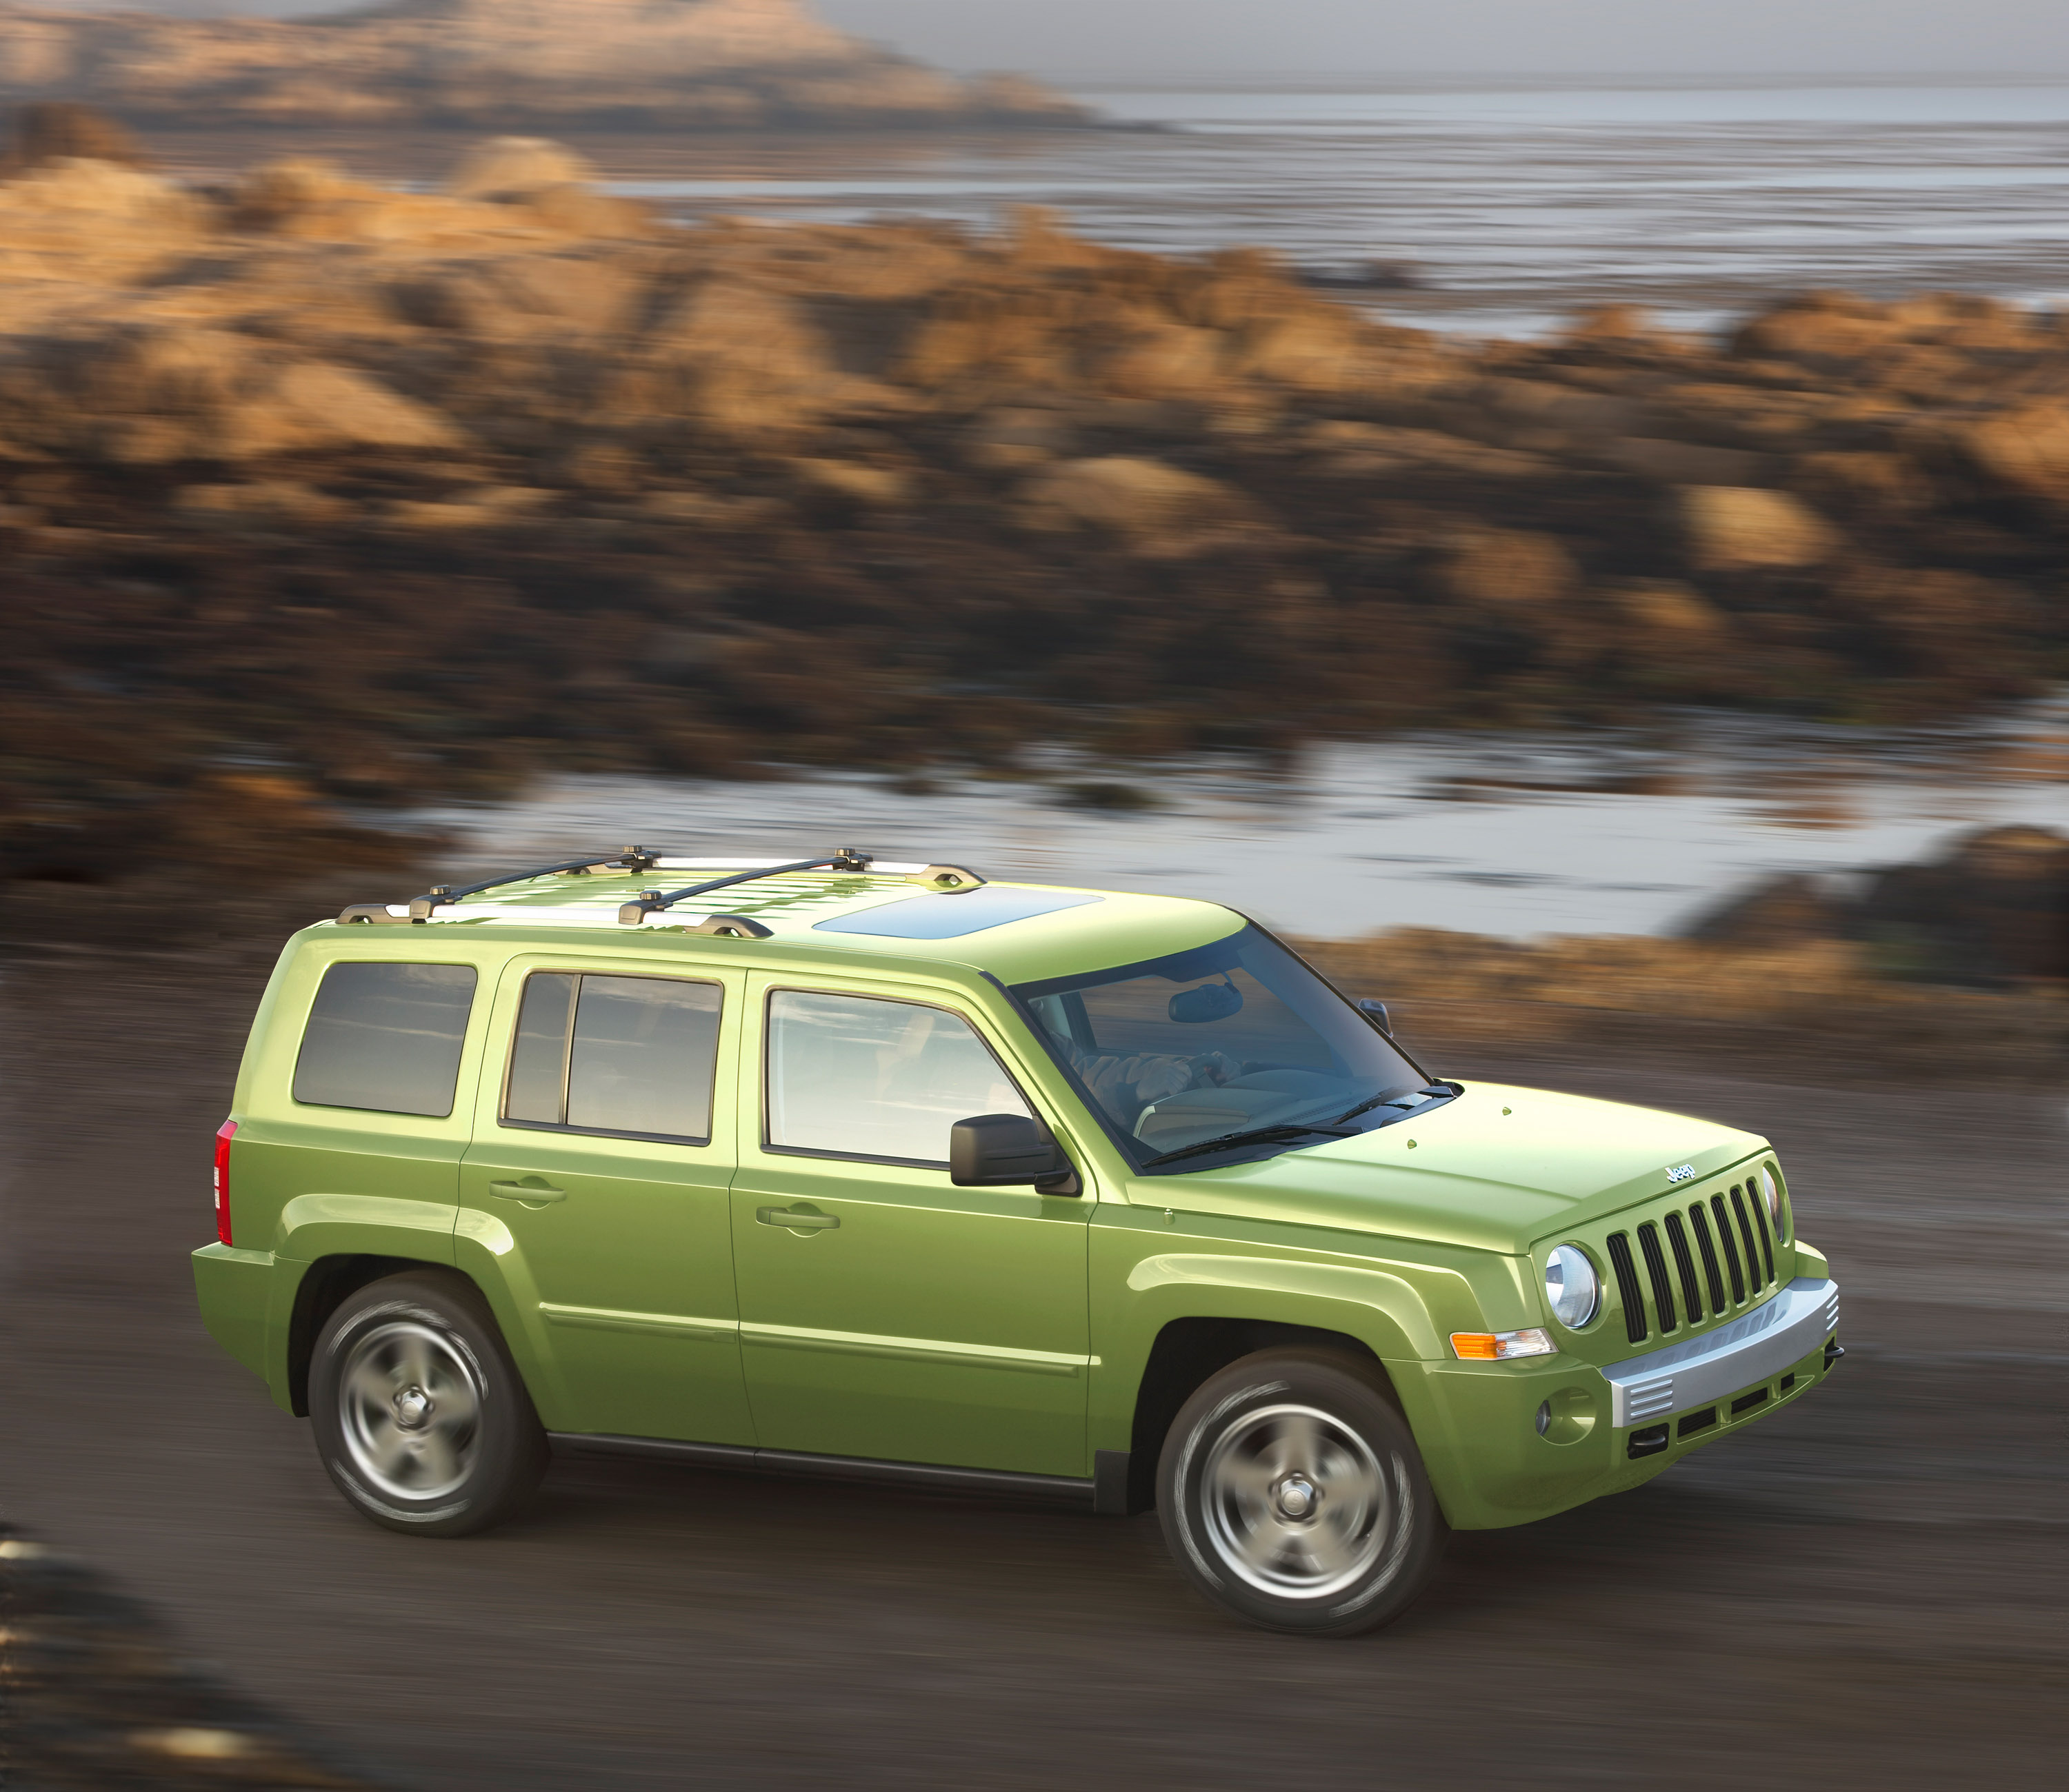 2010 Jeep Patriot 4x4 Awarded For Compact SUV Of Texas